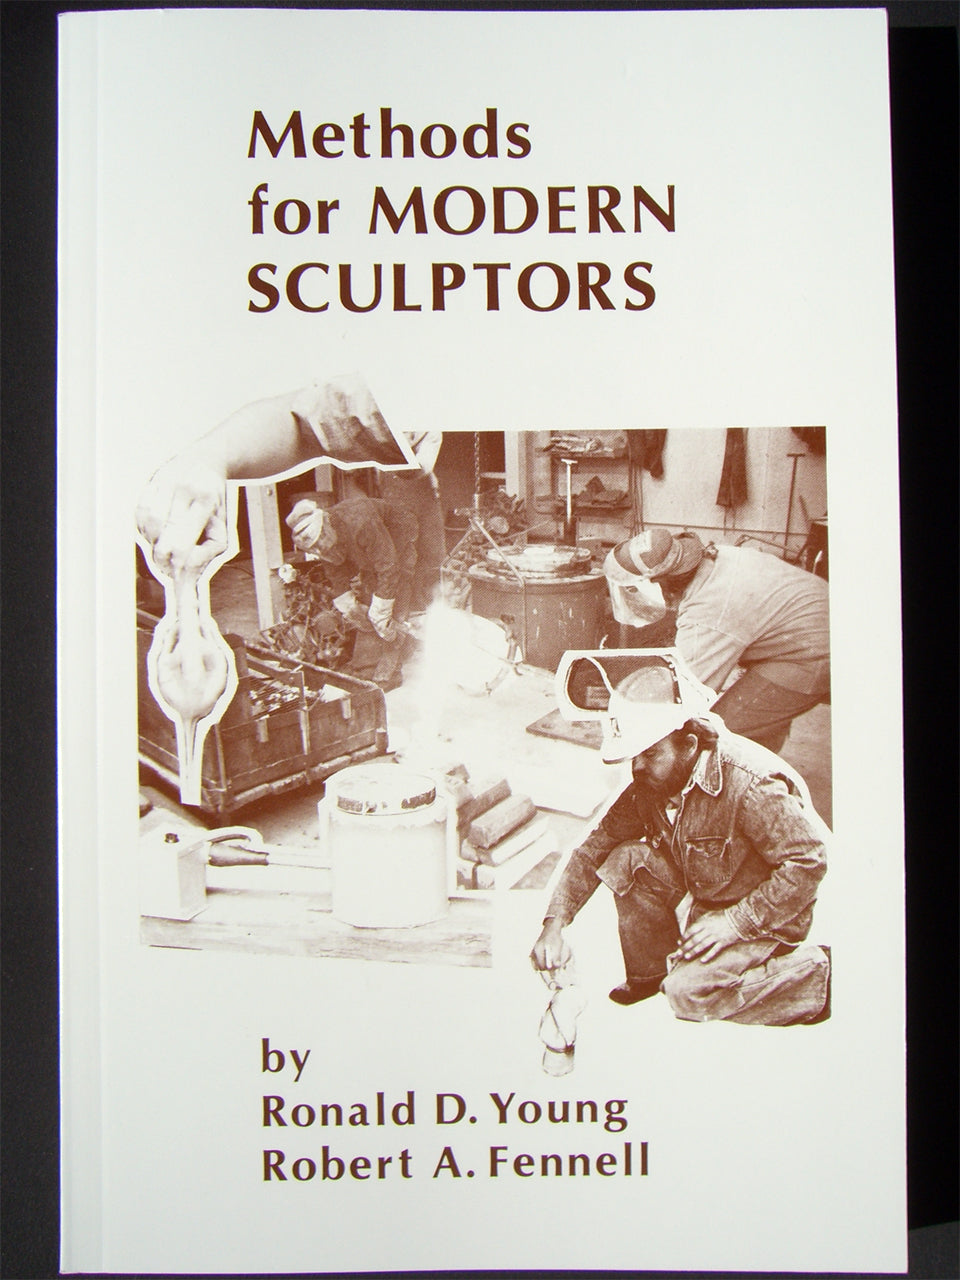 Methods for Modern Sculptors